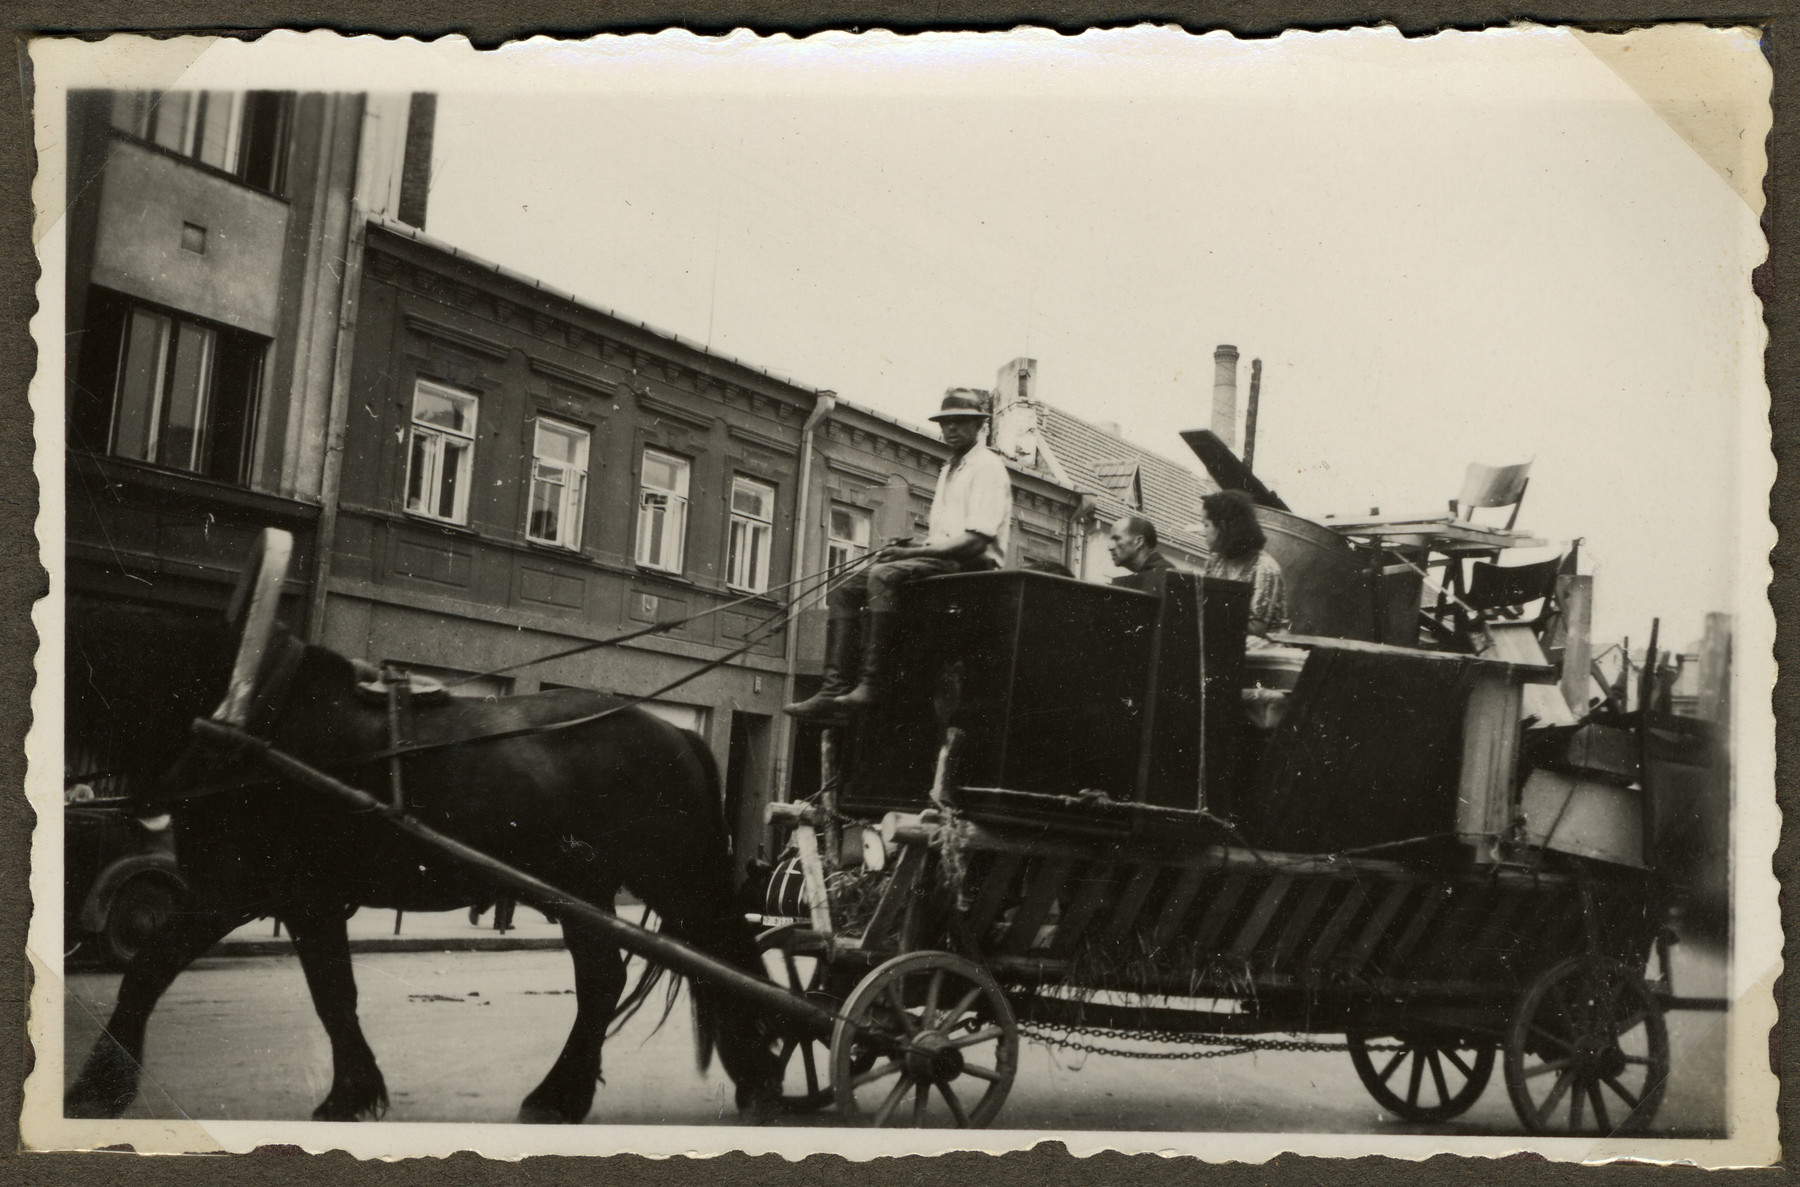 Jews move their belongings on carts and wagons from downtown Kaunas to the new ghetto located across the river in Slobodka.